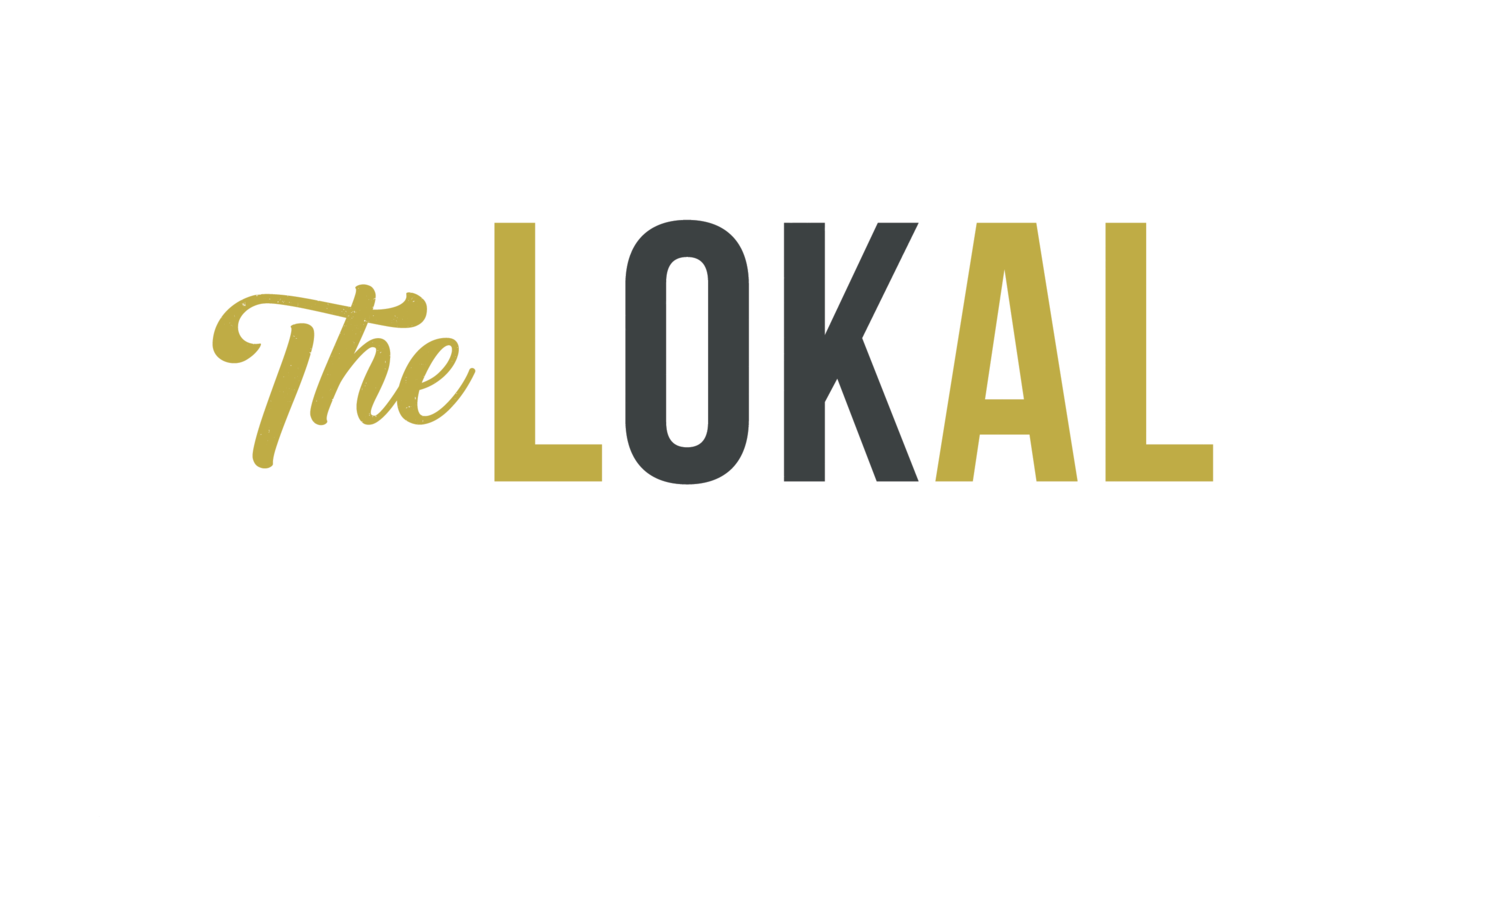 The Lokal Yukon